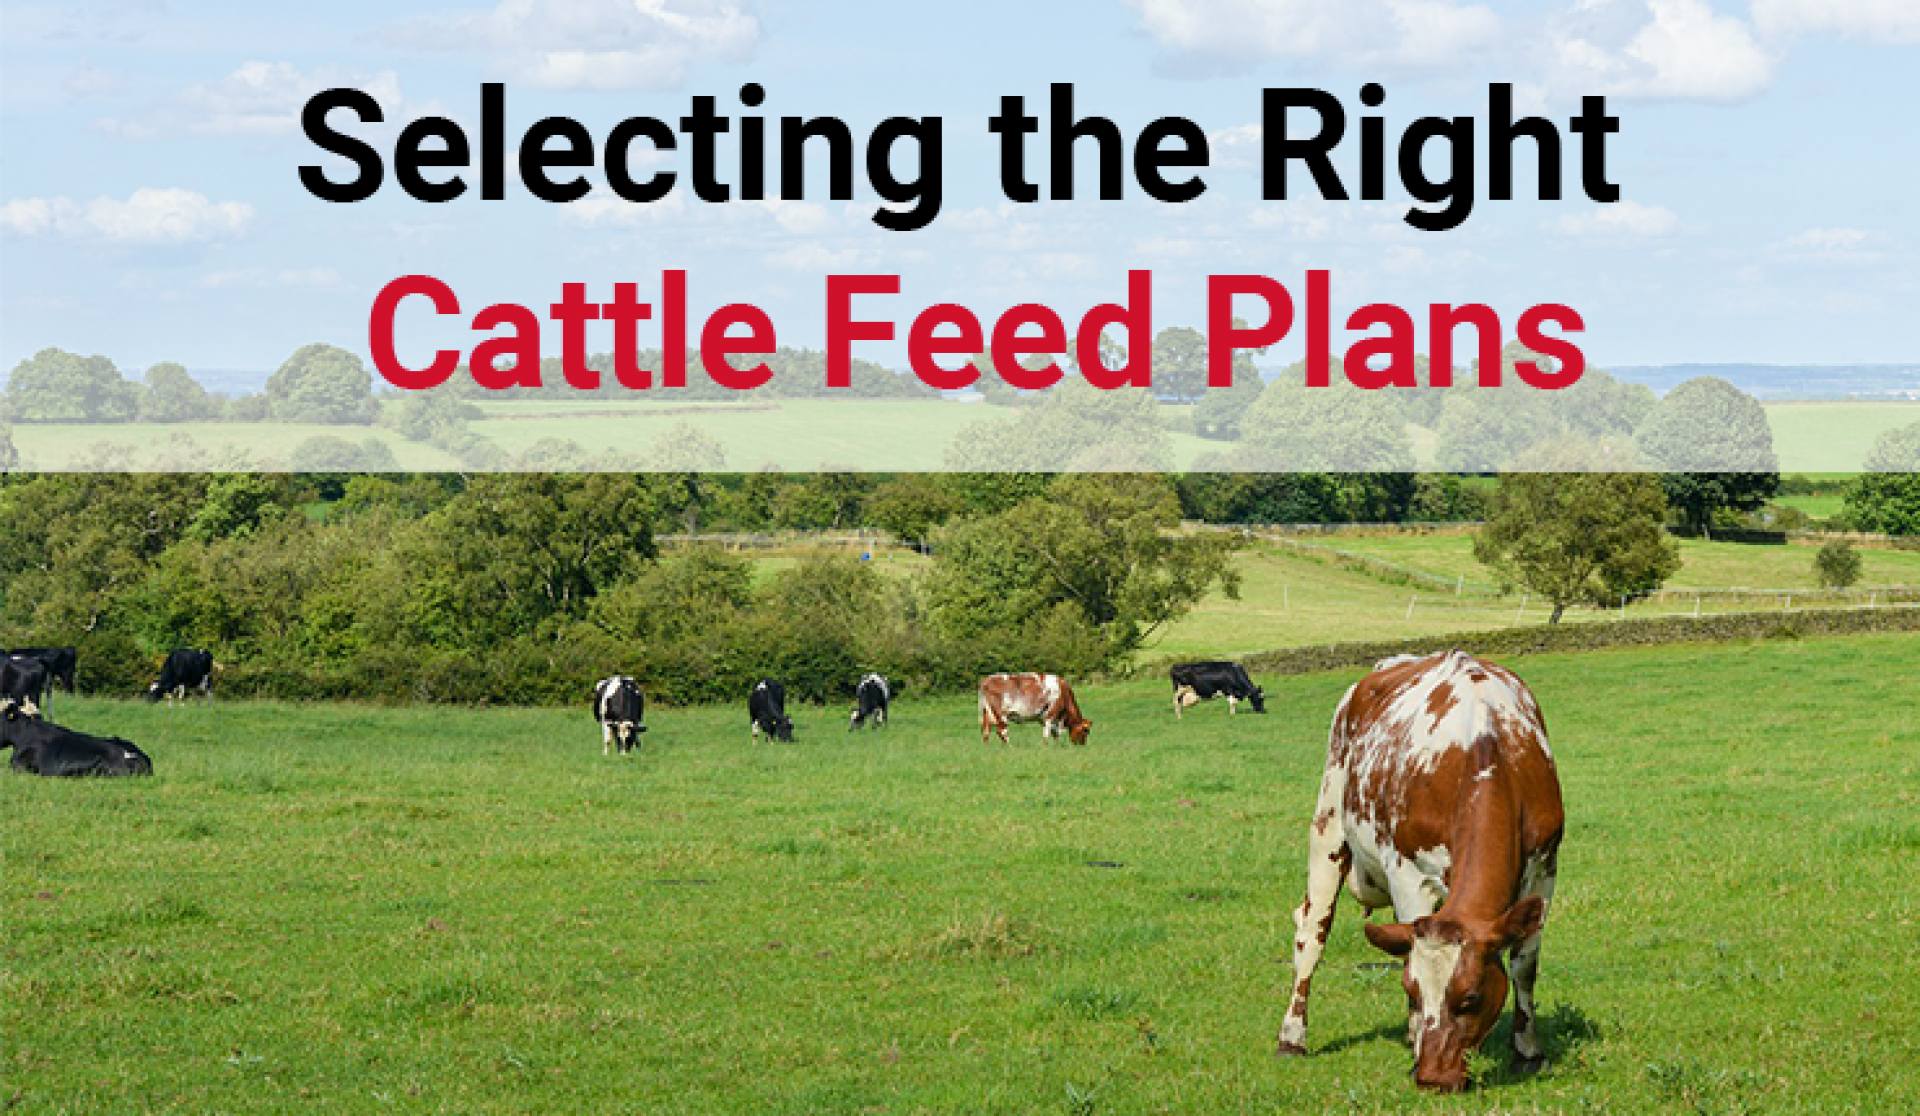 Cattle Feed Plans